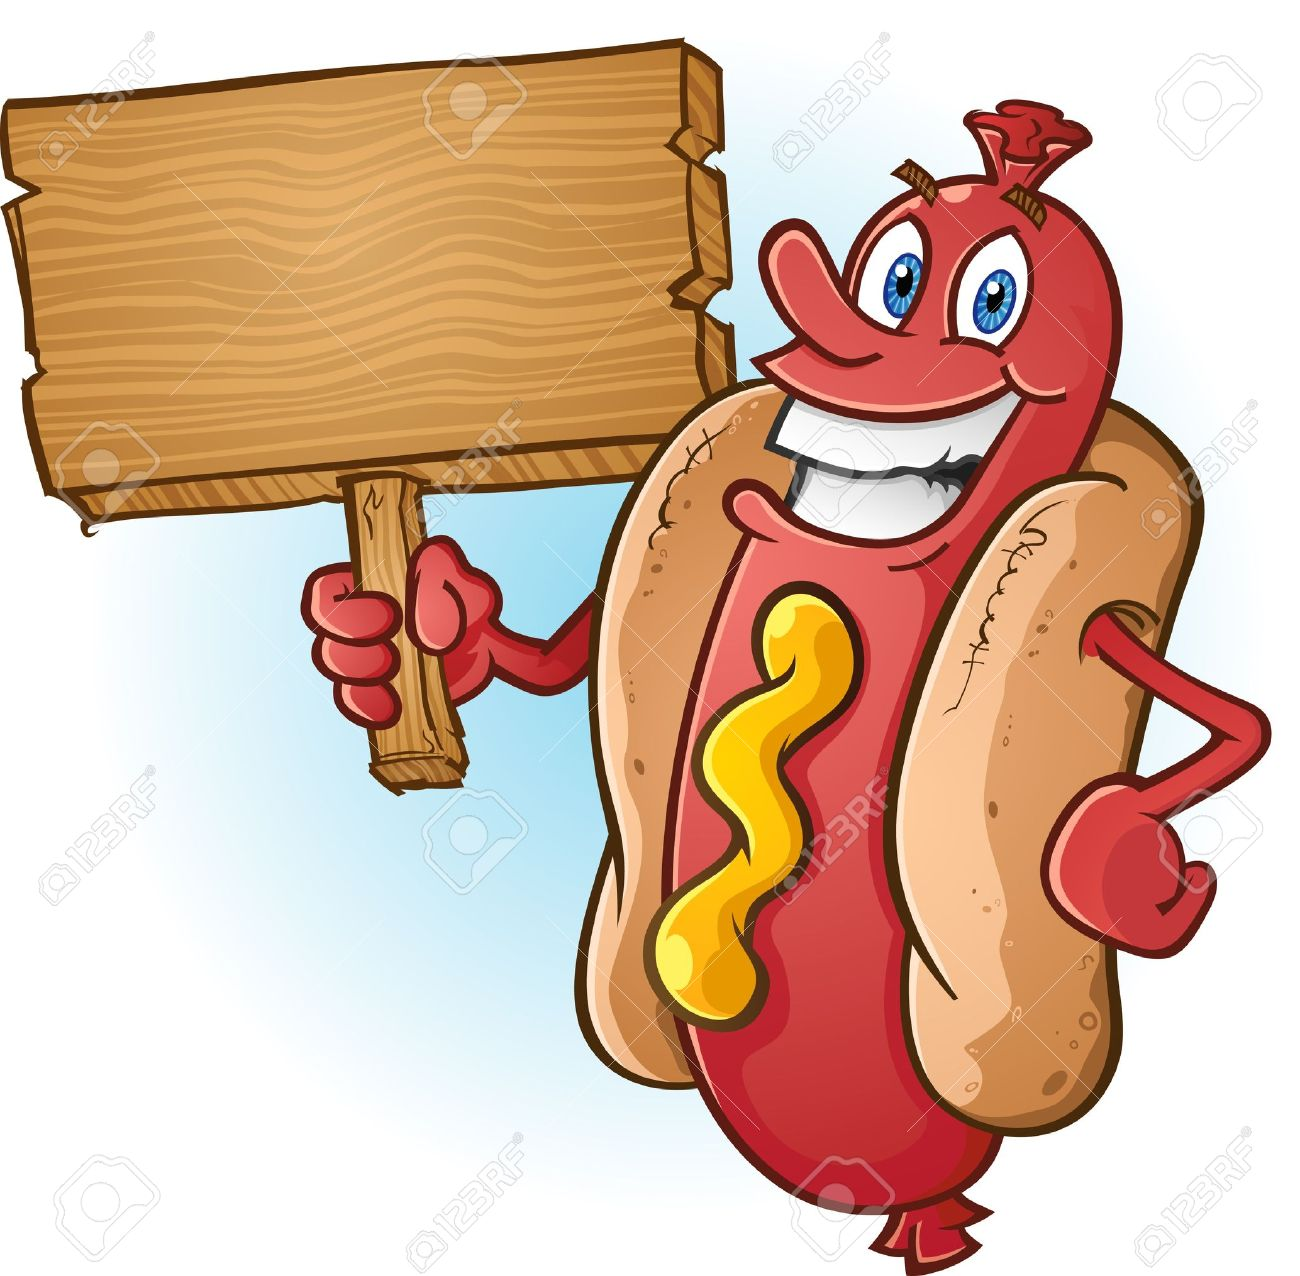 Hot Dog Cartoon Holding A Blank Wooden Sign Royalty Free Cliparts